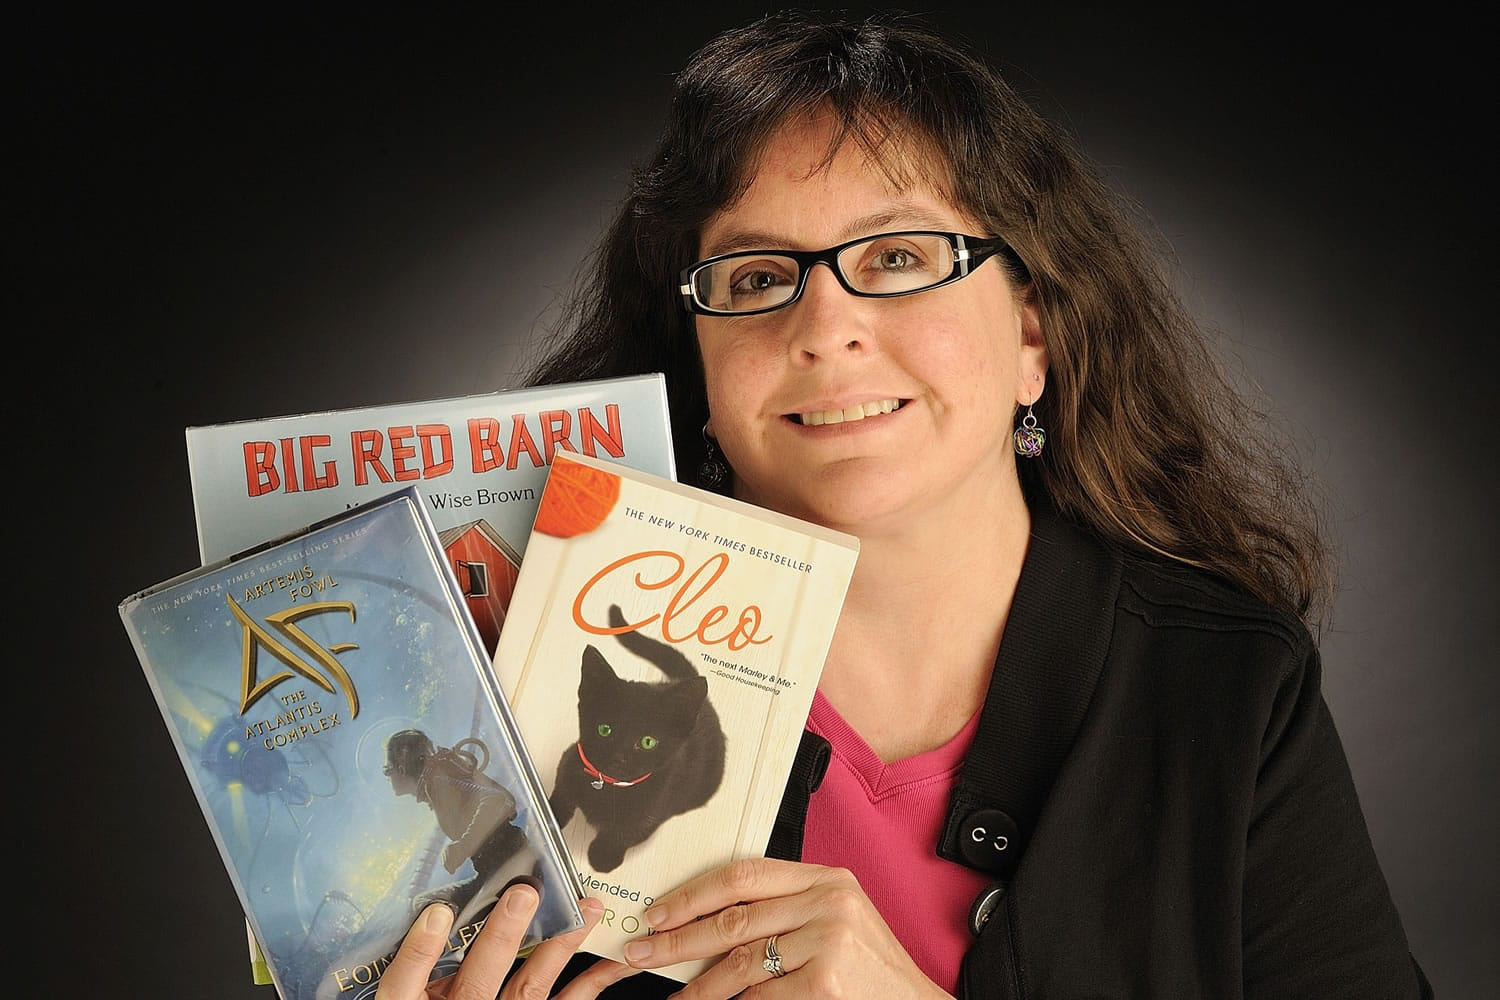 Jan Johnston is the Collection Development Coordinator for the Fort Vancouver Regional Library District. Email her at readingforfun@fvrl.org.